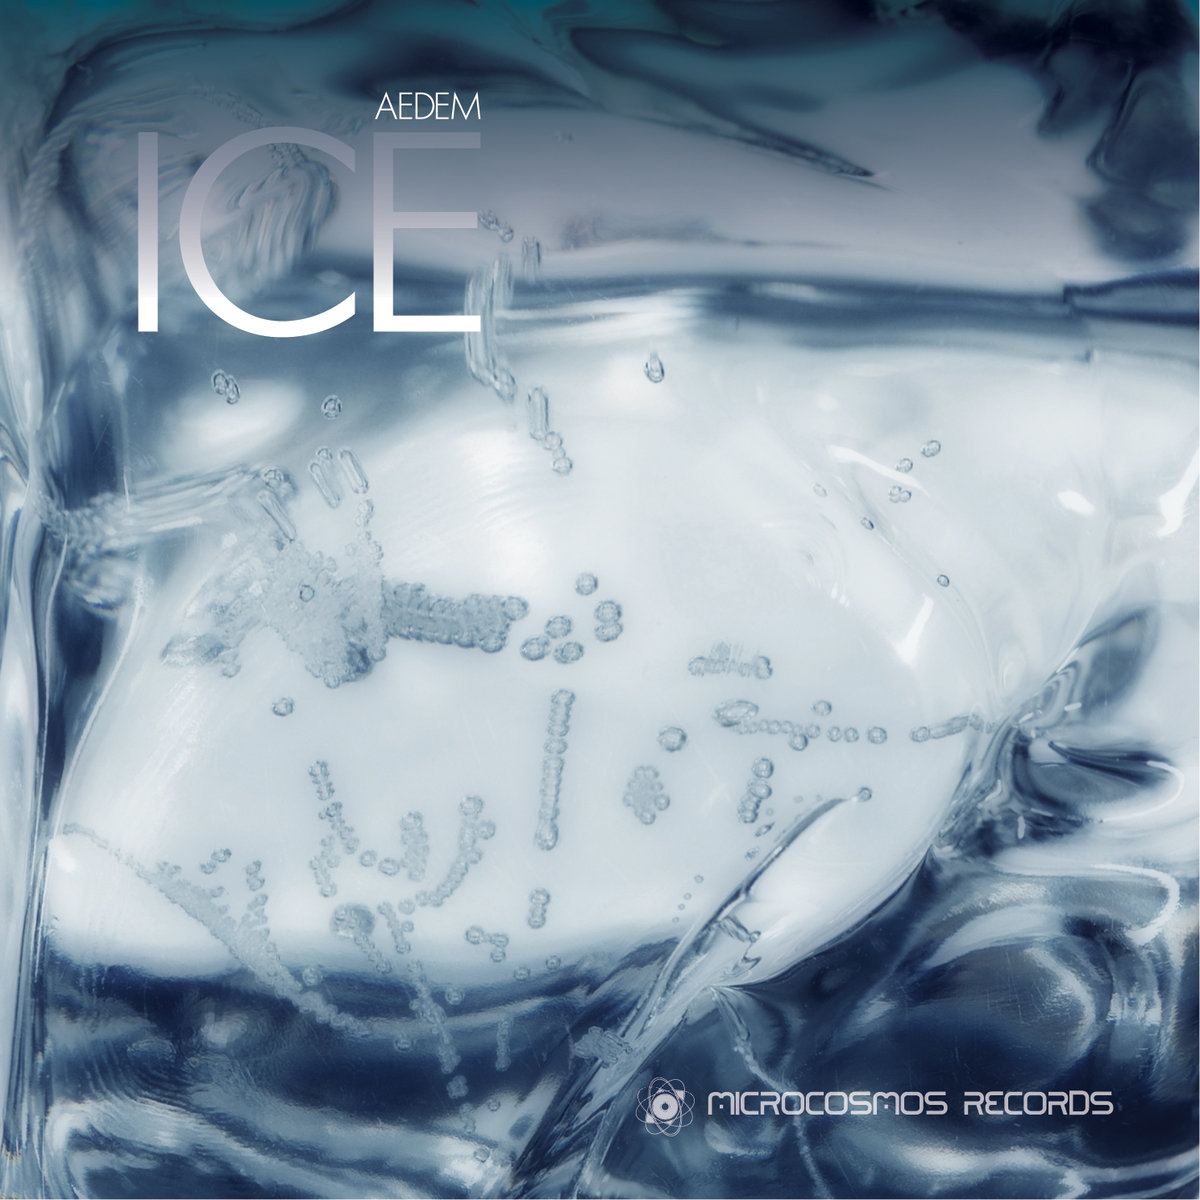 Aedem - Citronella @ 'Ice' album (ambient, chill-out)